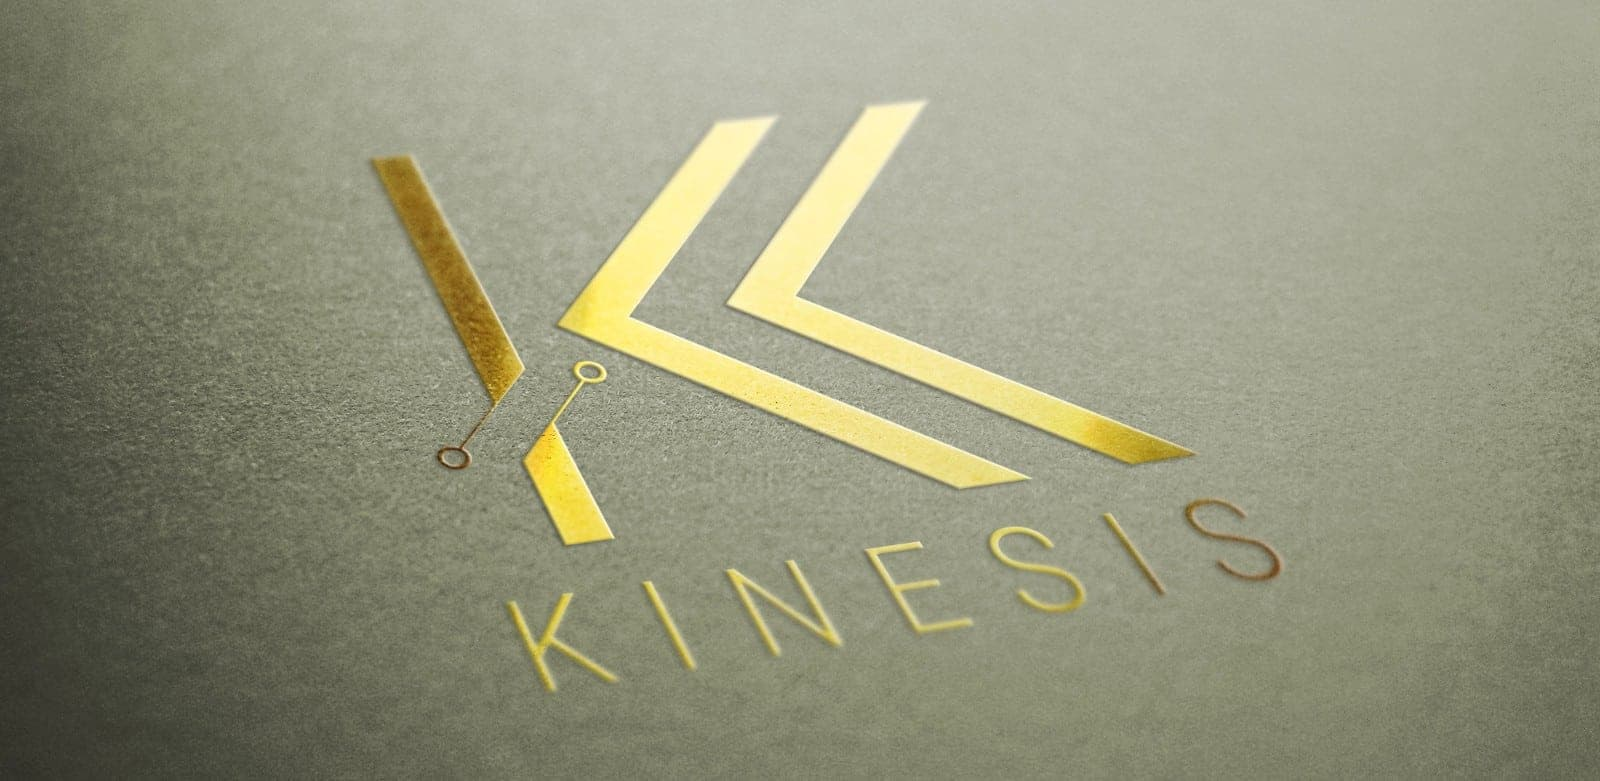 New Kinesis cryptocurrency system Can Now Be Used to Buy Tickets